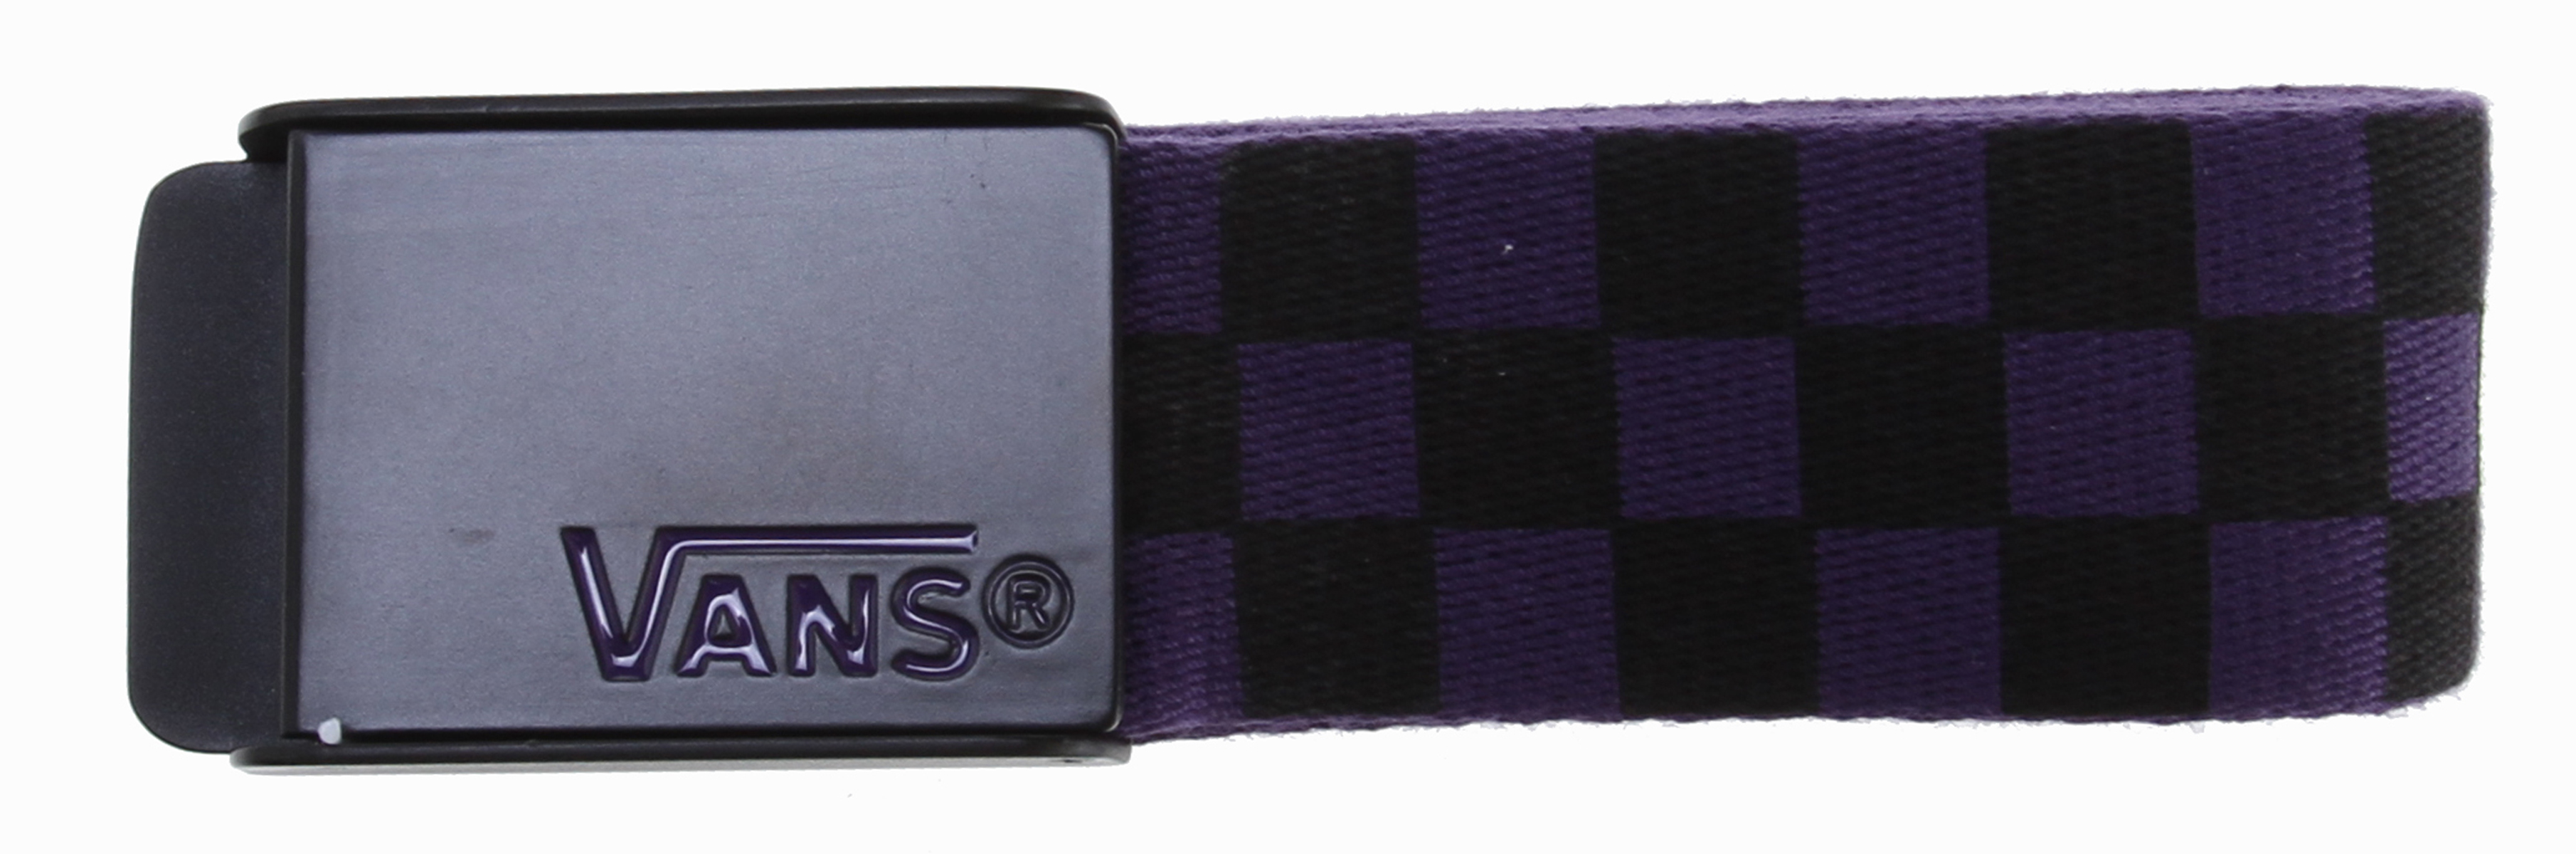 Skateboard Key Features of the Vans Deppster Web Belt: 100% Polyester web belt with all-over checkerboard print Custom Vans buckle and tipping. - $15.00